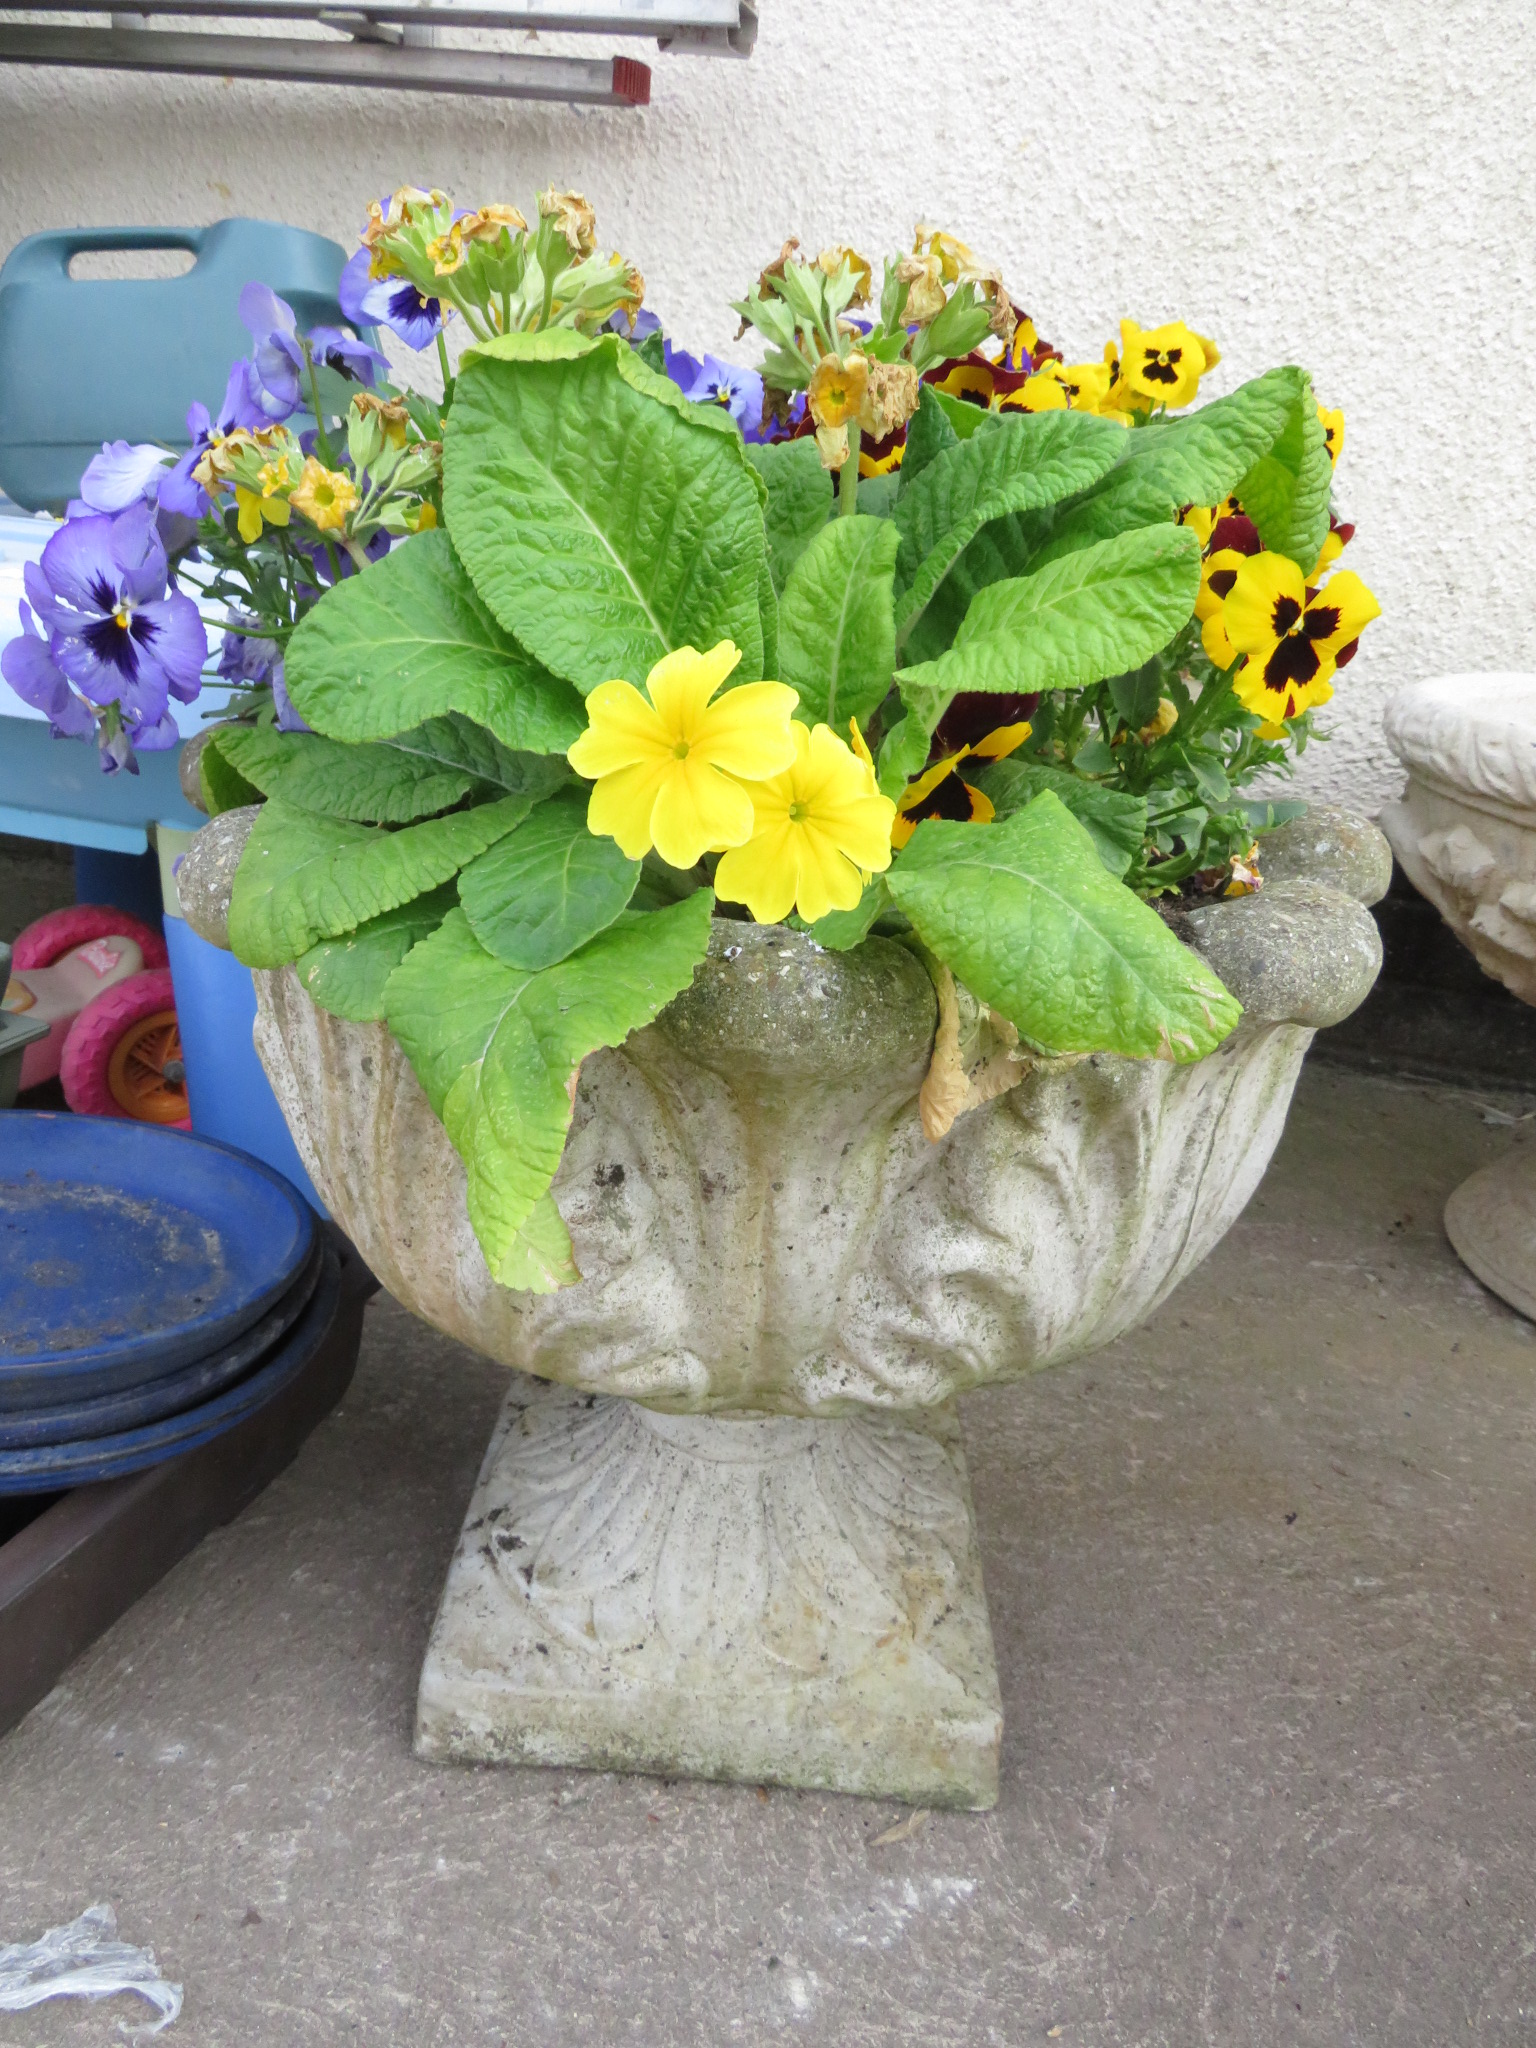 Lot 5 - TWO CIRCULAR POTS DECORATED WITH ACANTHUS LEAVES WITH CONTENTS OF PANSIES AND PRIMULA